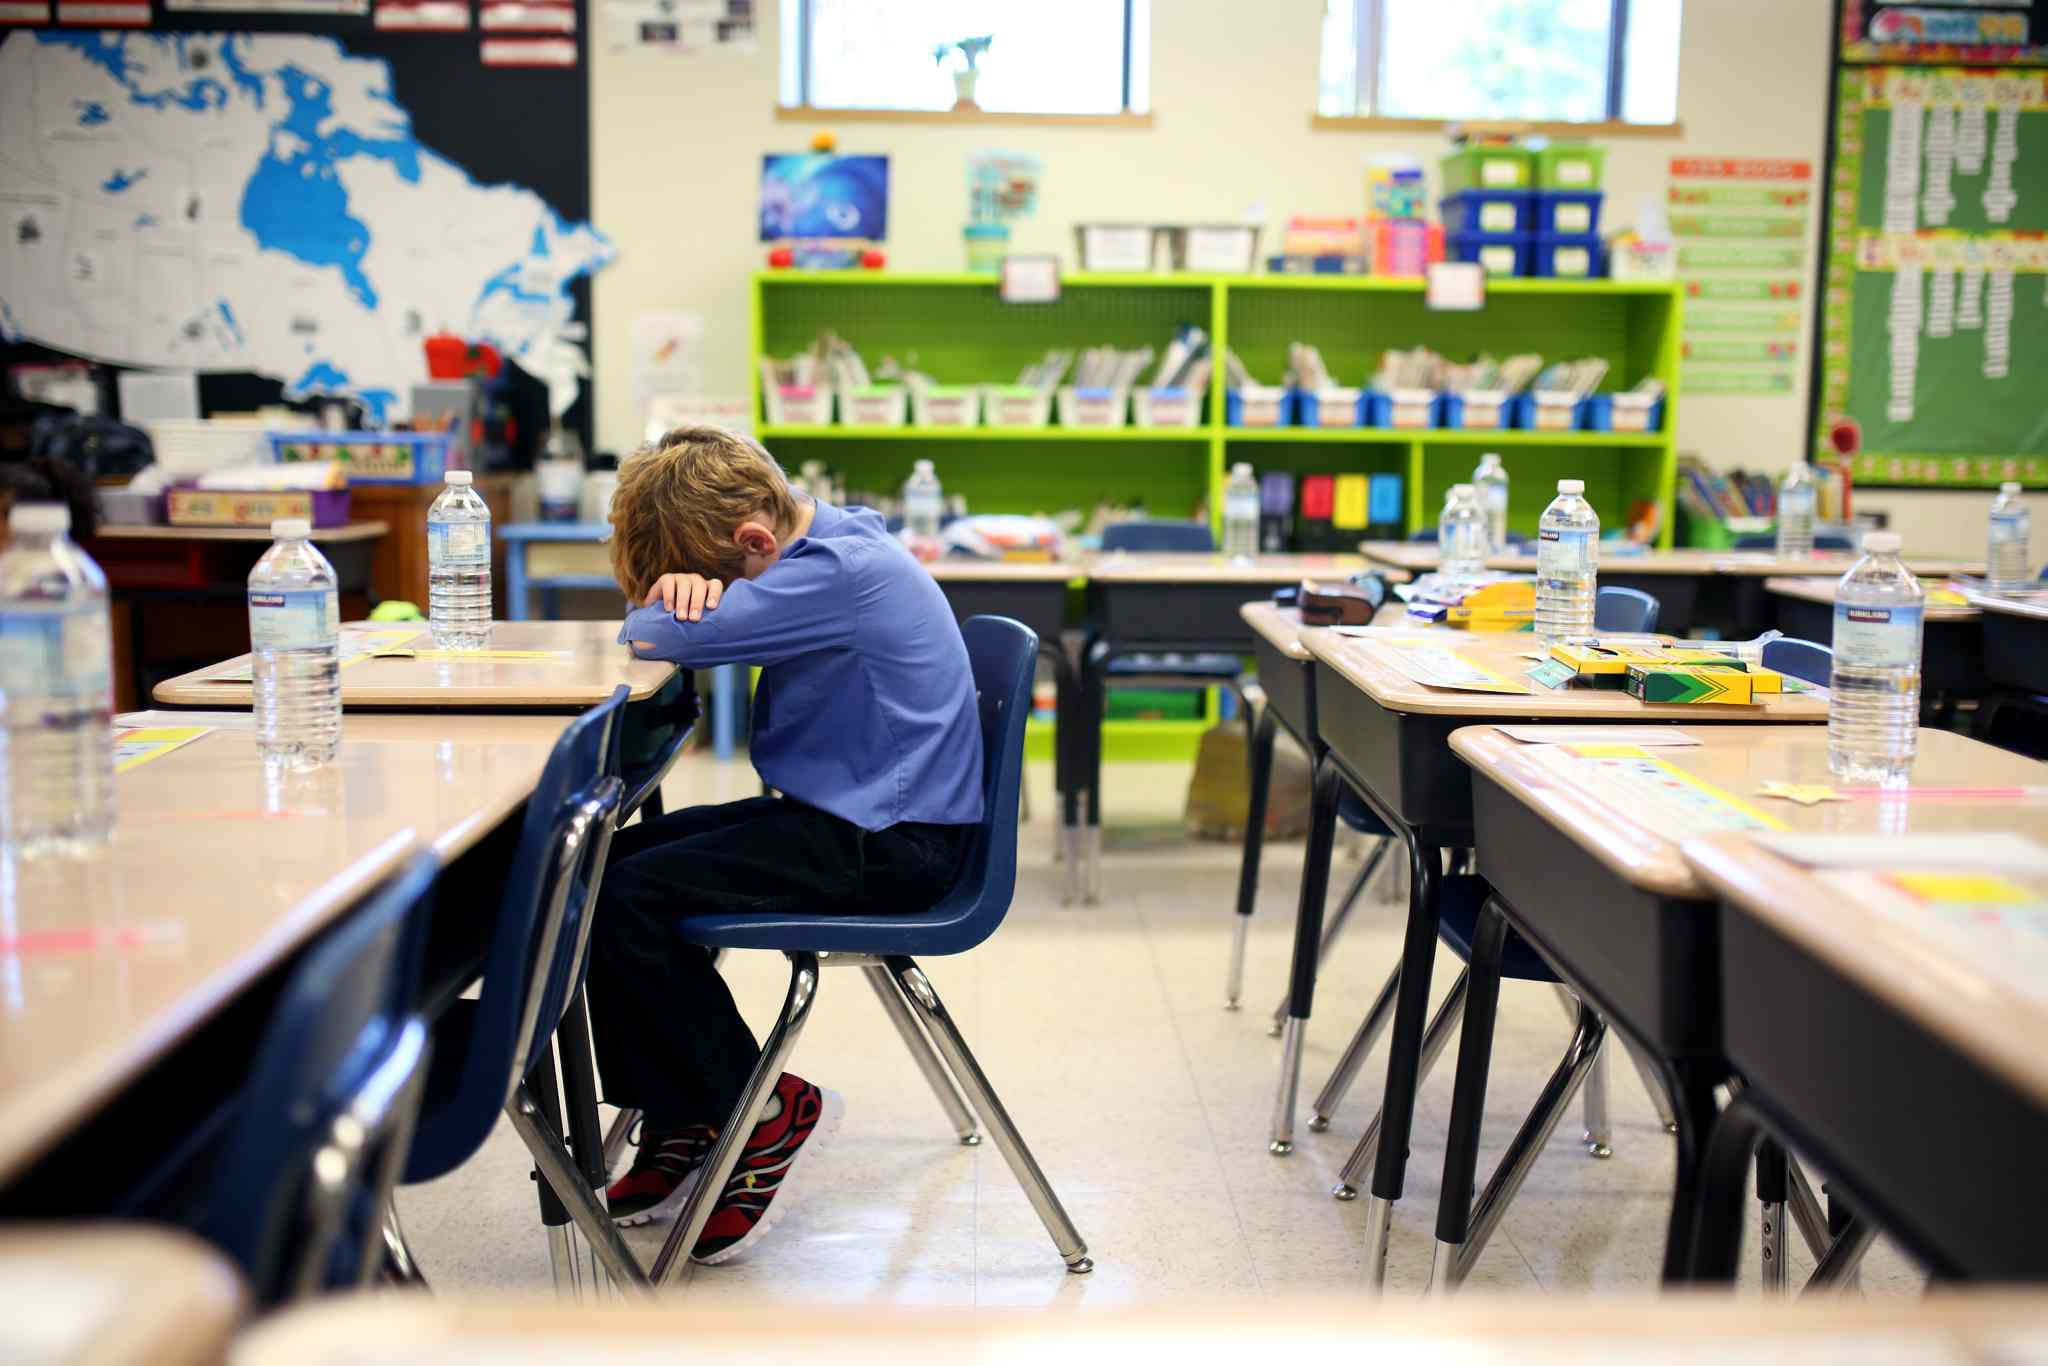 Manitoba is dead last among Canadian provinces in math, science and reading.